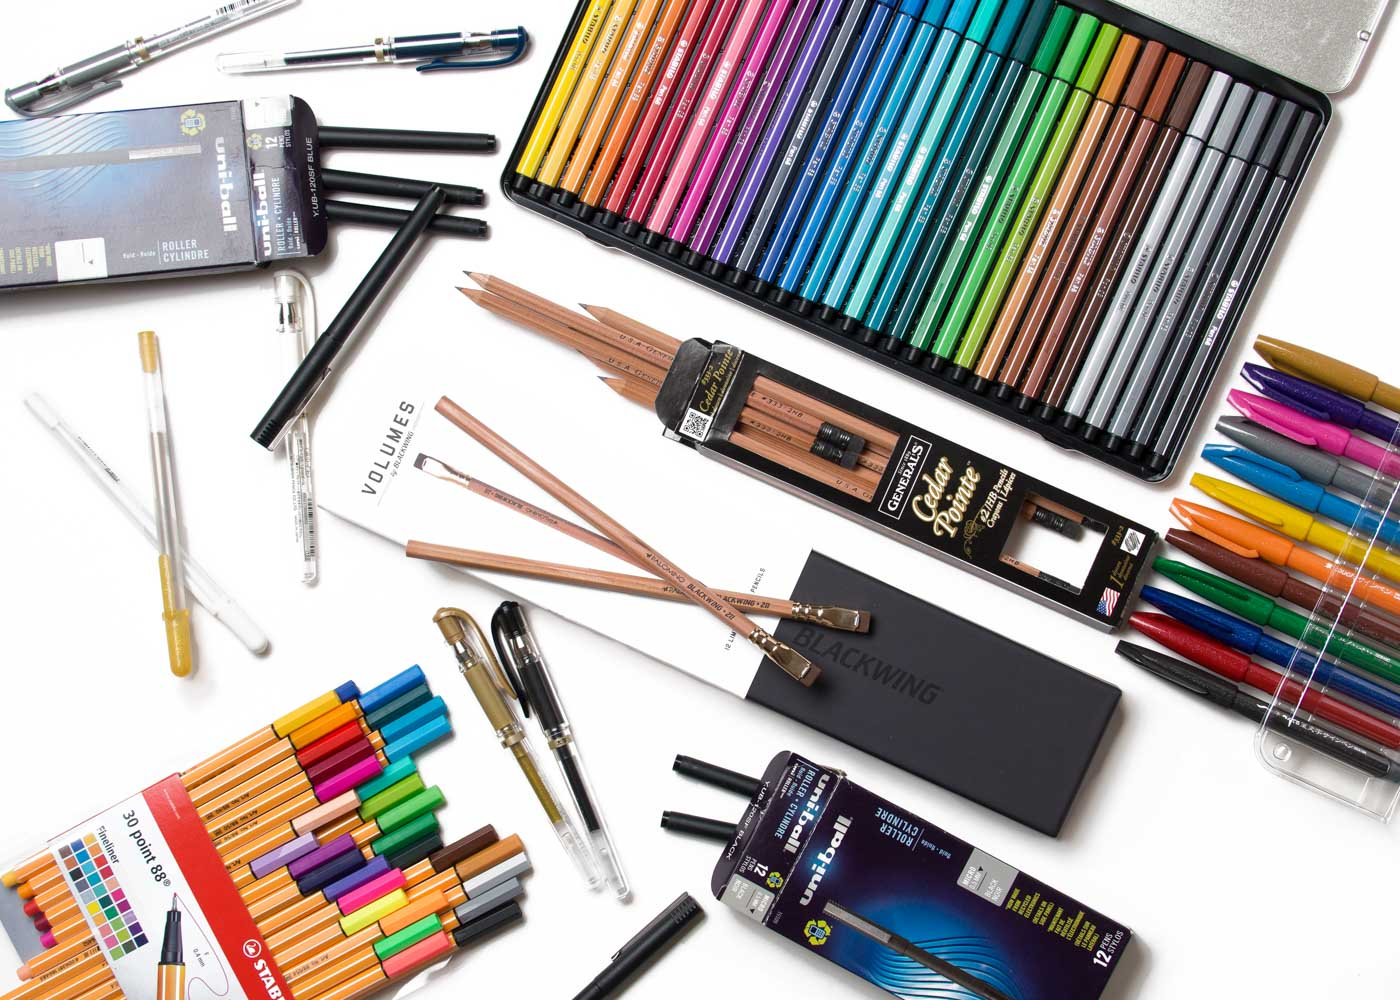 Some of the pens and pencils we ❤️.